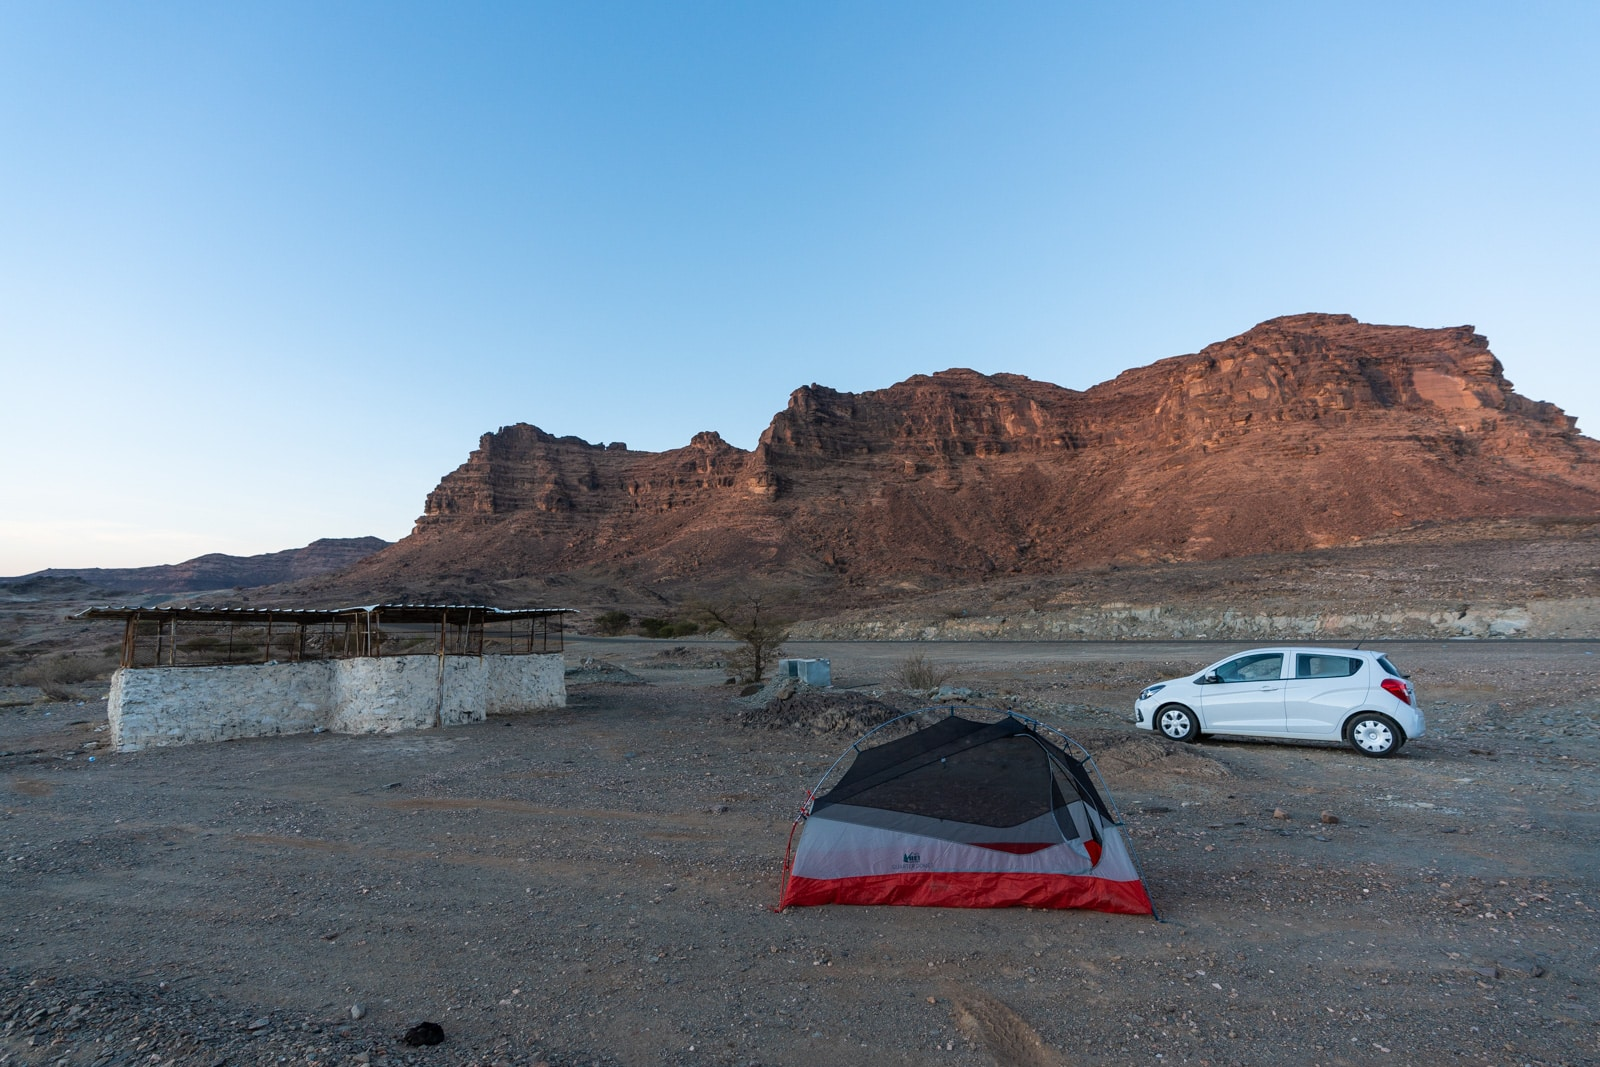 Camping in Saudi Arabia near a prayer room